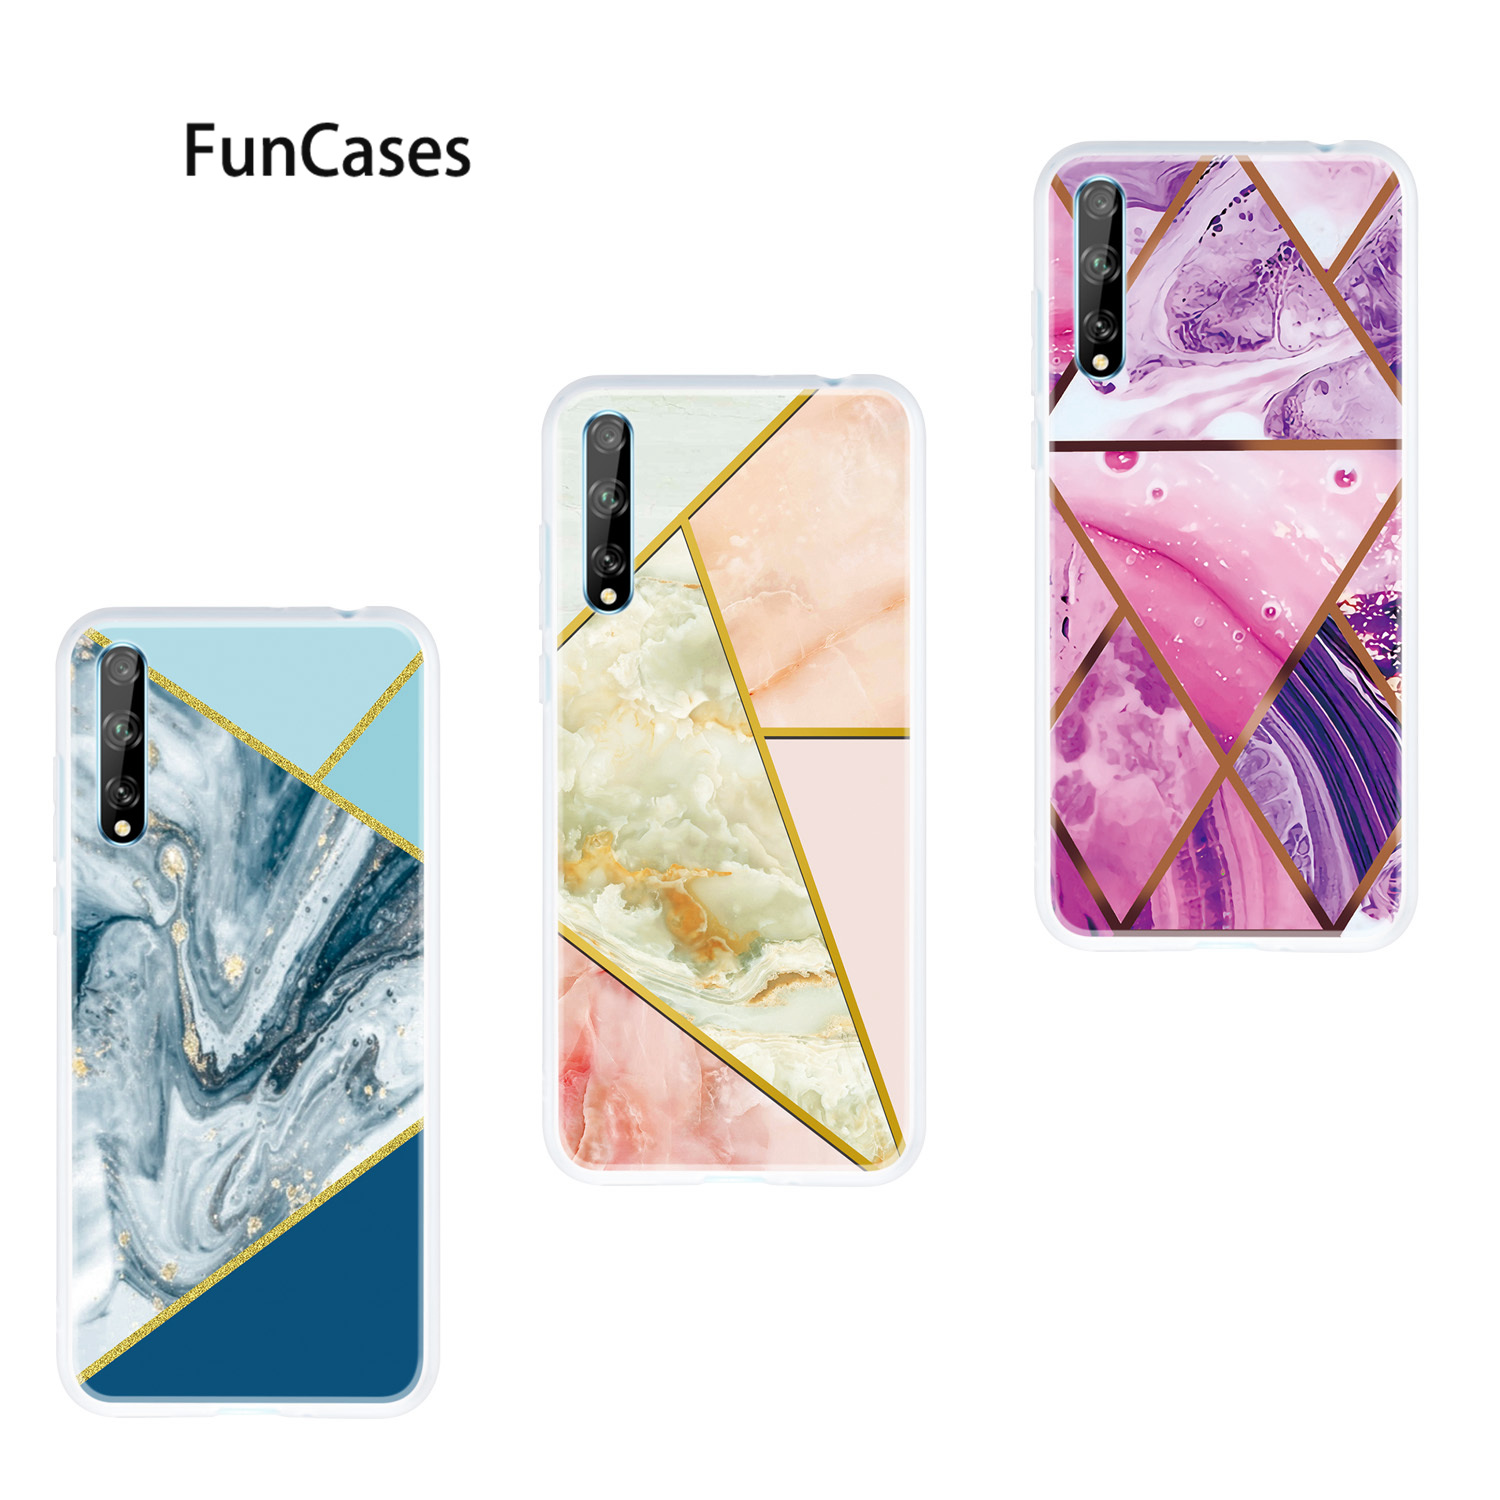 Covers Silicon Case For Huawei Enjoy 10 Plus Contrast Color Etui Soft TPU Protector Huawei P Smart Plus 2019 Enjoy 10S Z 9S(China)